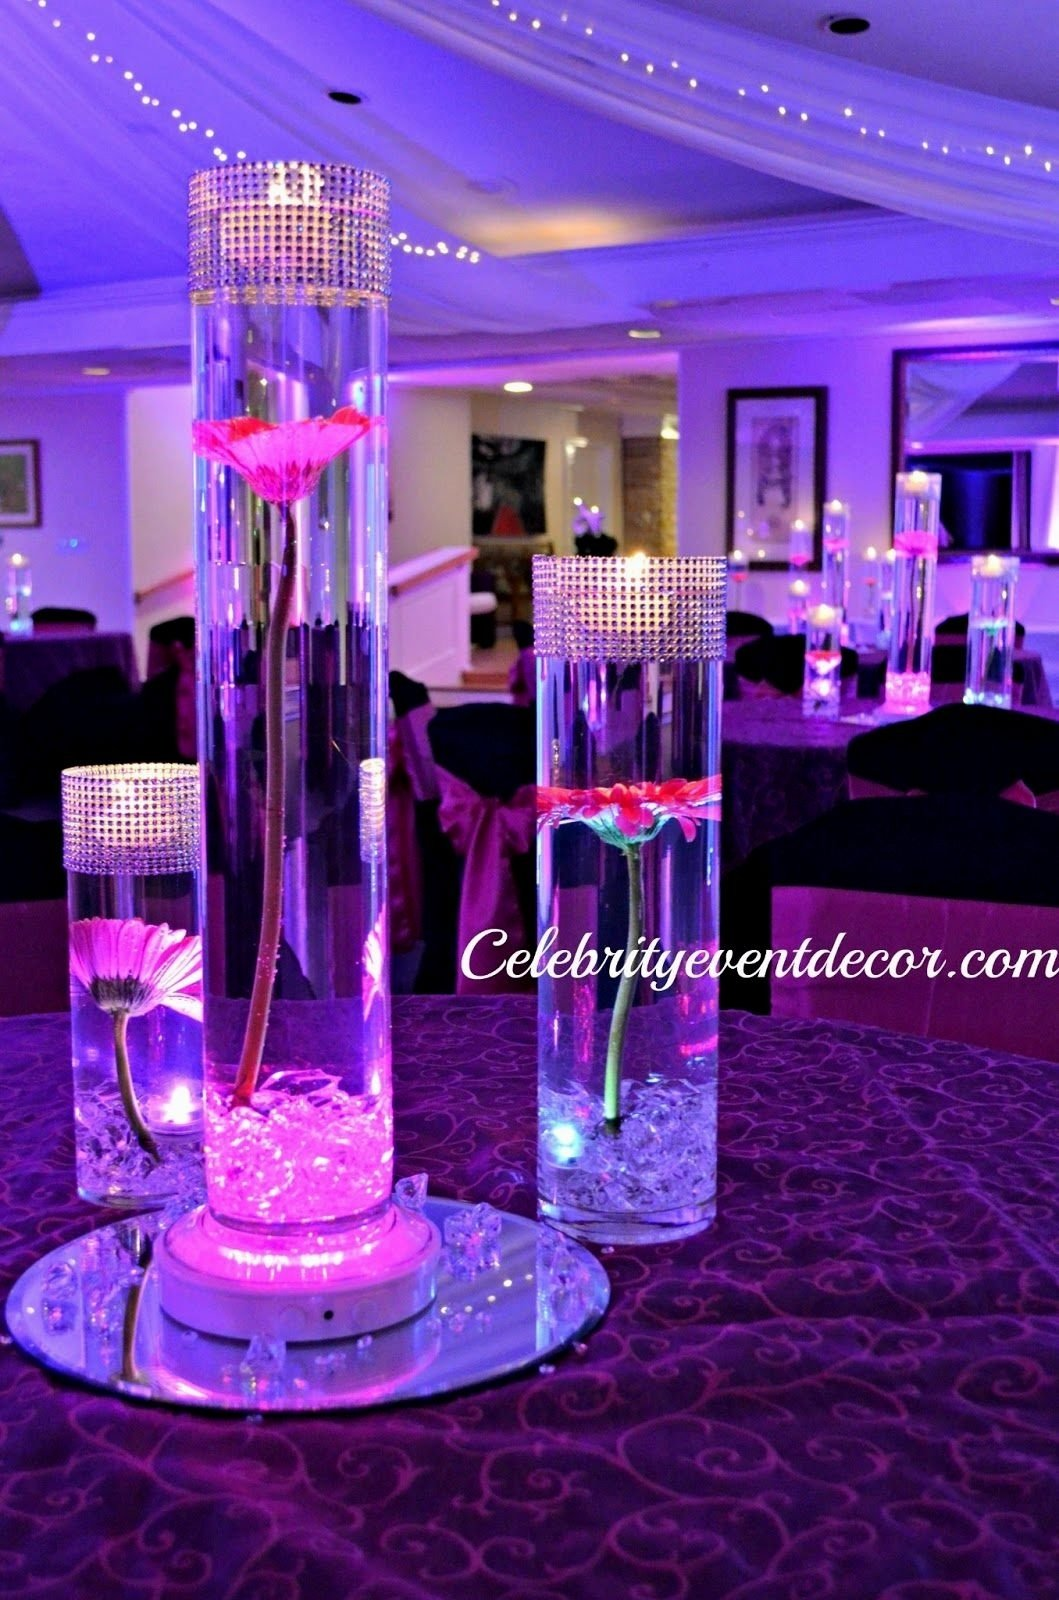 10 Fabulous Ideas For Sweet 16 Birthday Party sweet sixteen themes and also cheap sweet 16 party ideas and also 2 2020